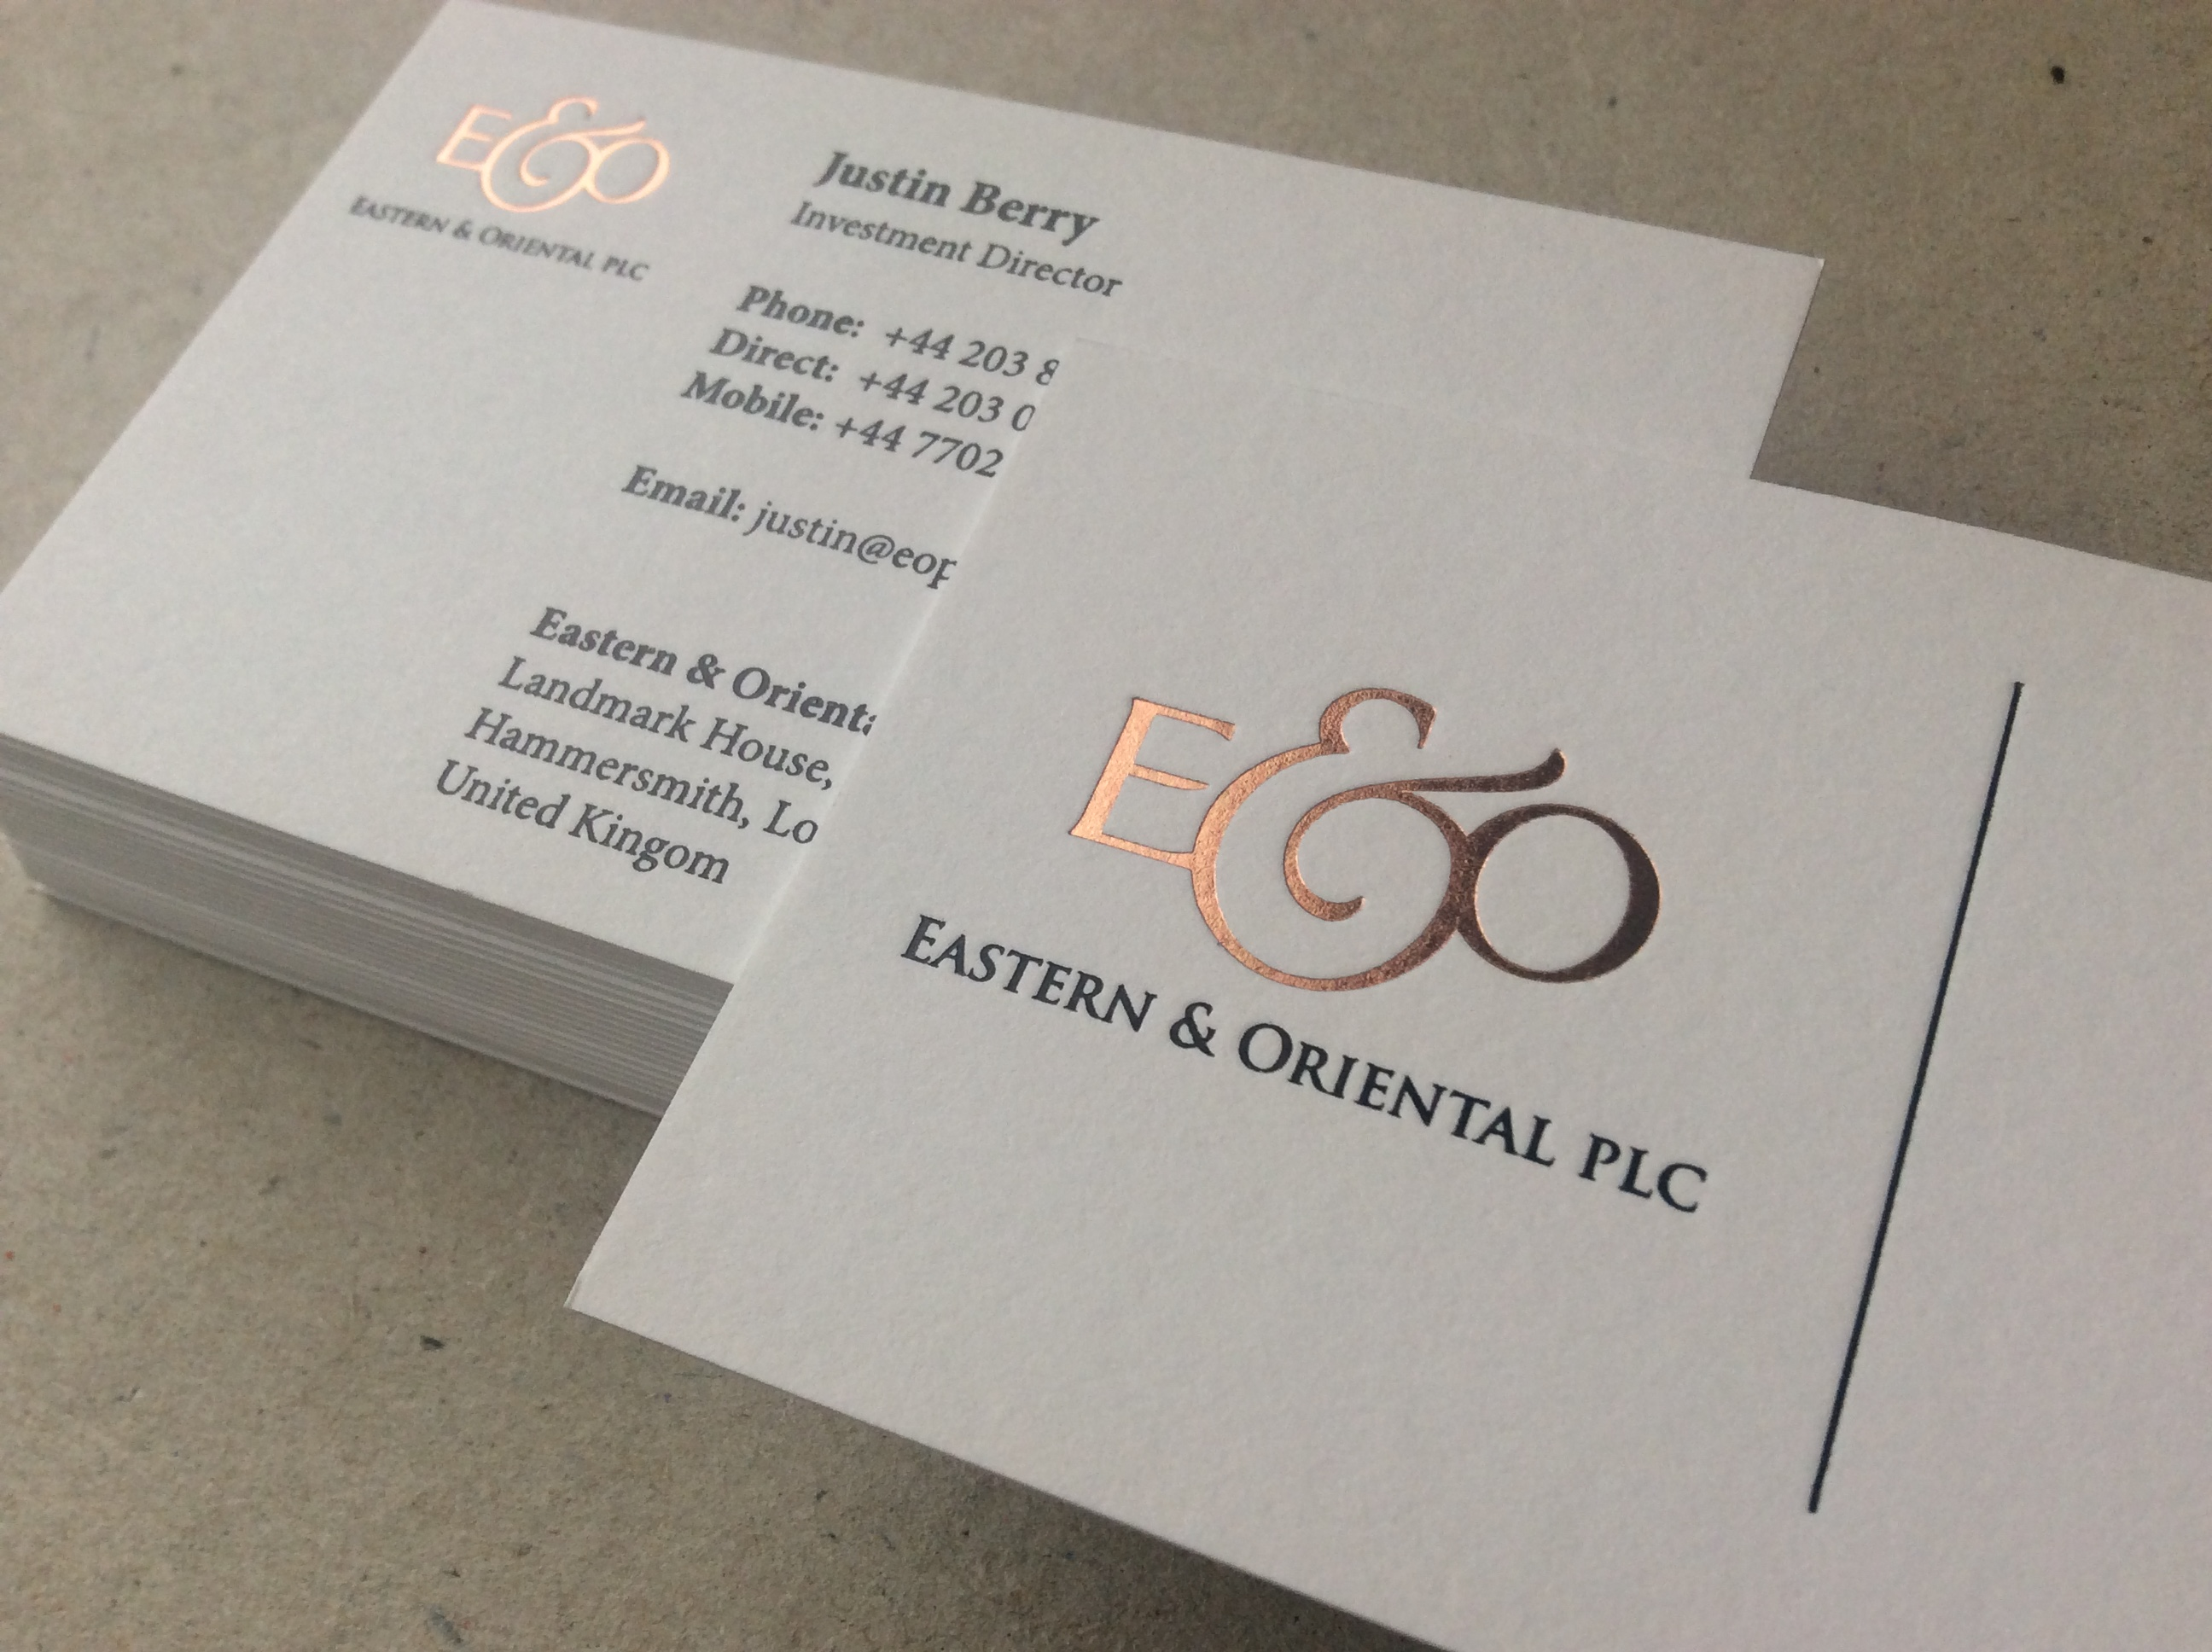 Quality professional business cards ubc rose gold letterpress foil business card reheart Image collections